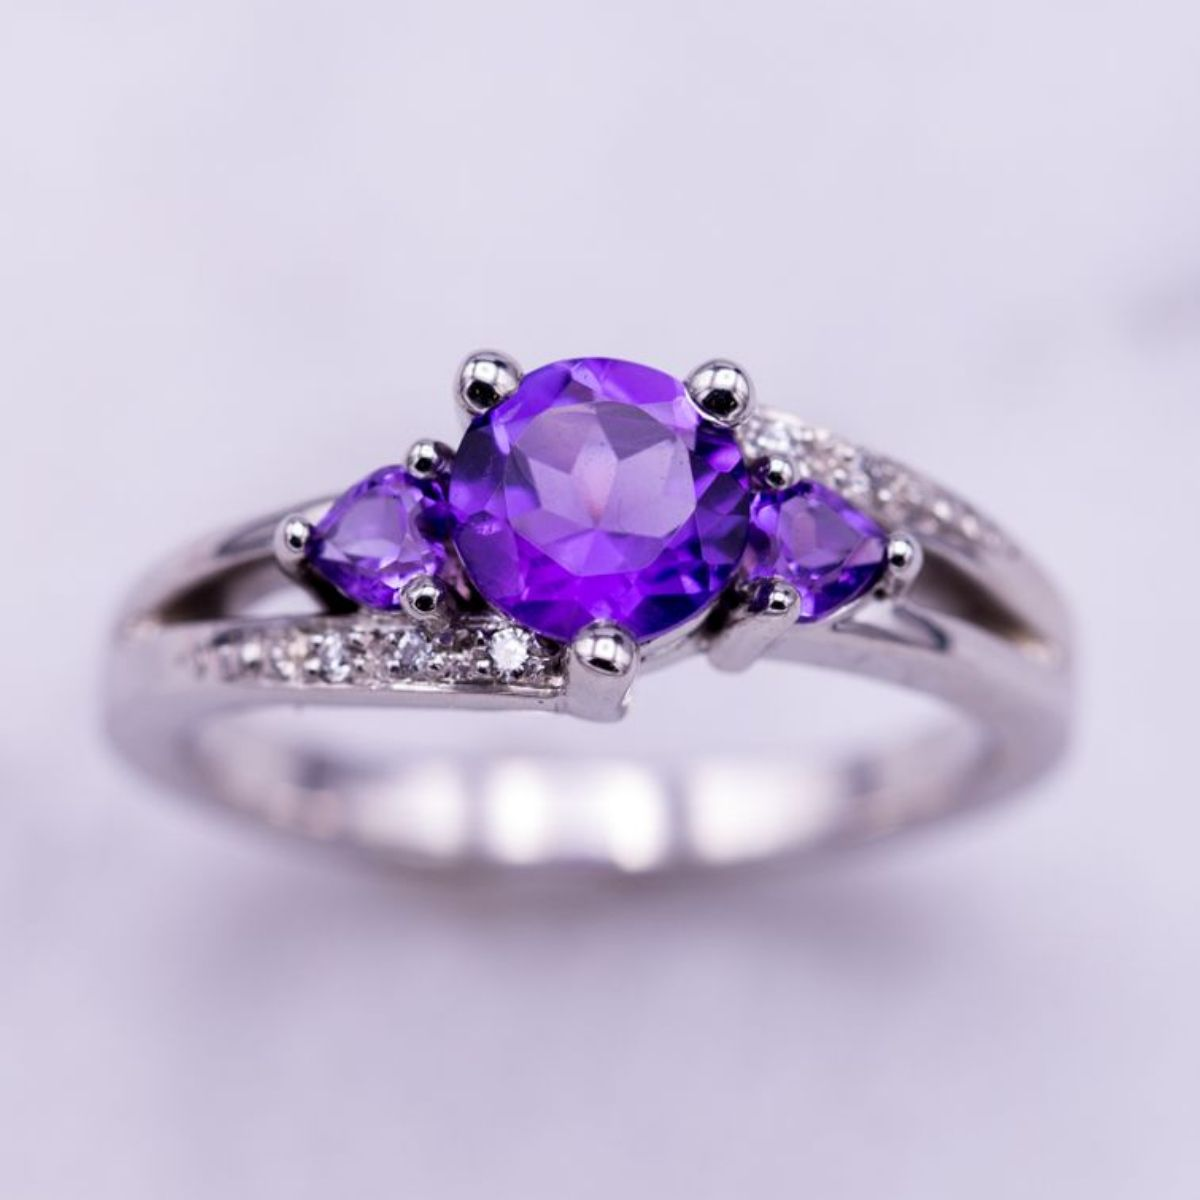 jewelers size in amethyst february diamond birthstone ring white shop cut and rings purple cushion square kaya cushionamy gold